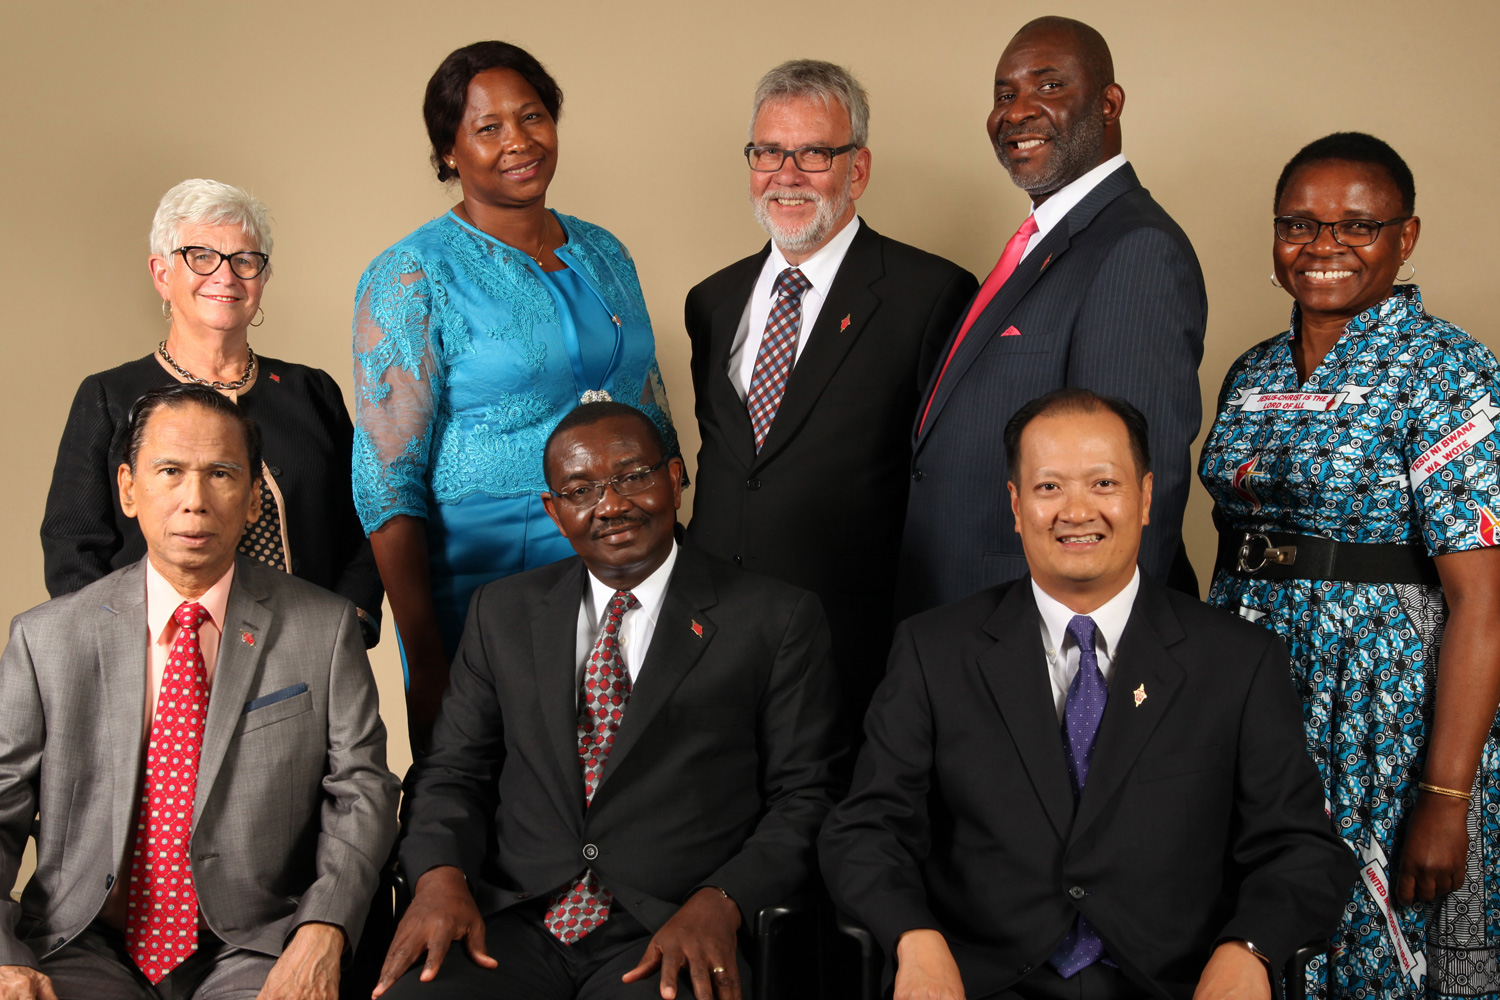 Judicial Council members are volunteers elected by General Conference.